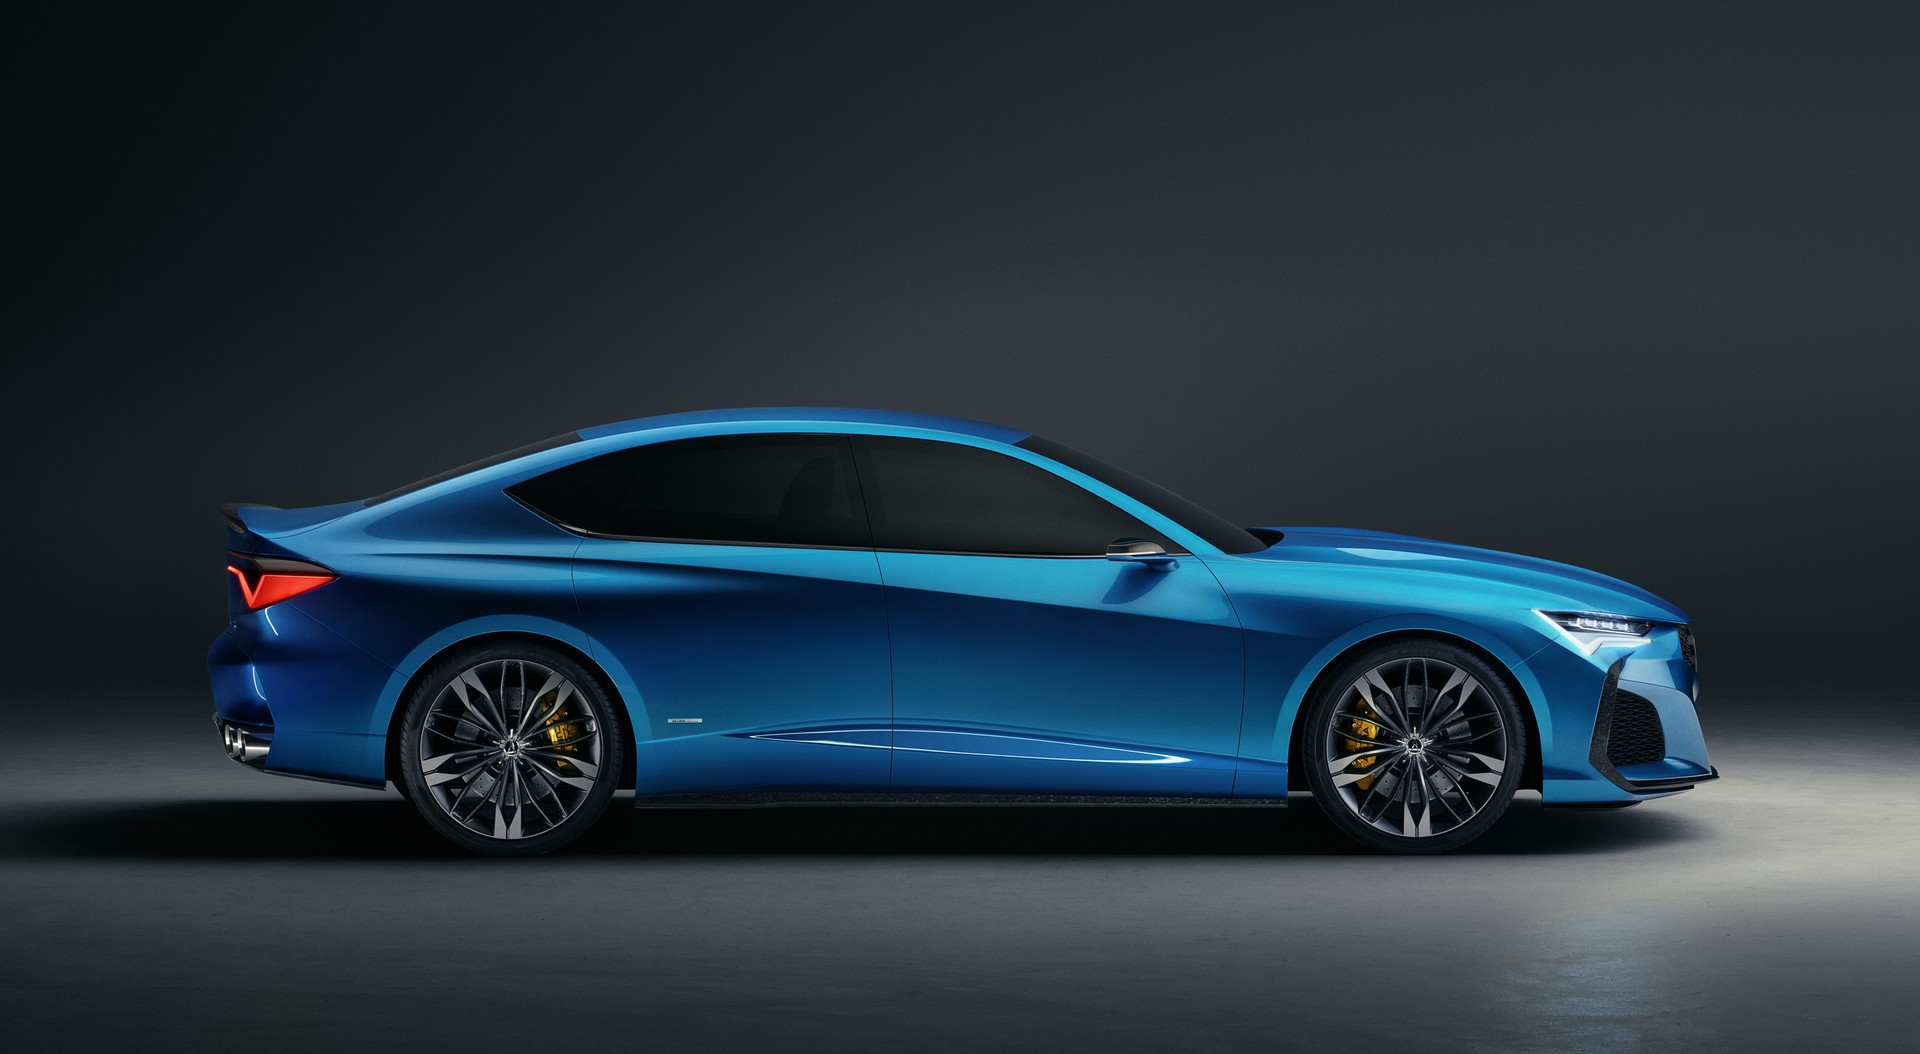 Meet the stunning looking Acura Type S Concept